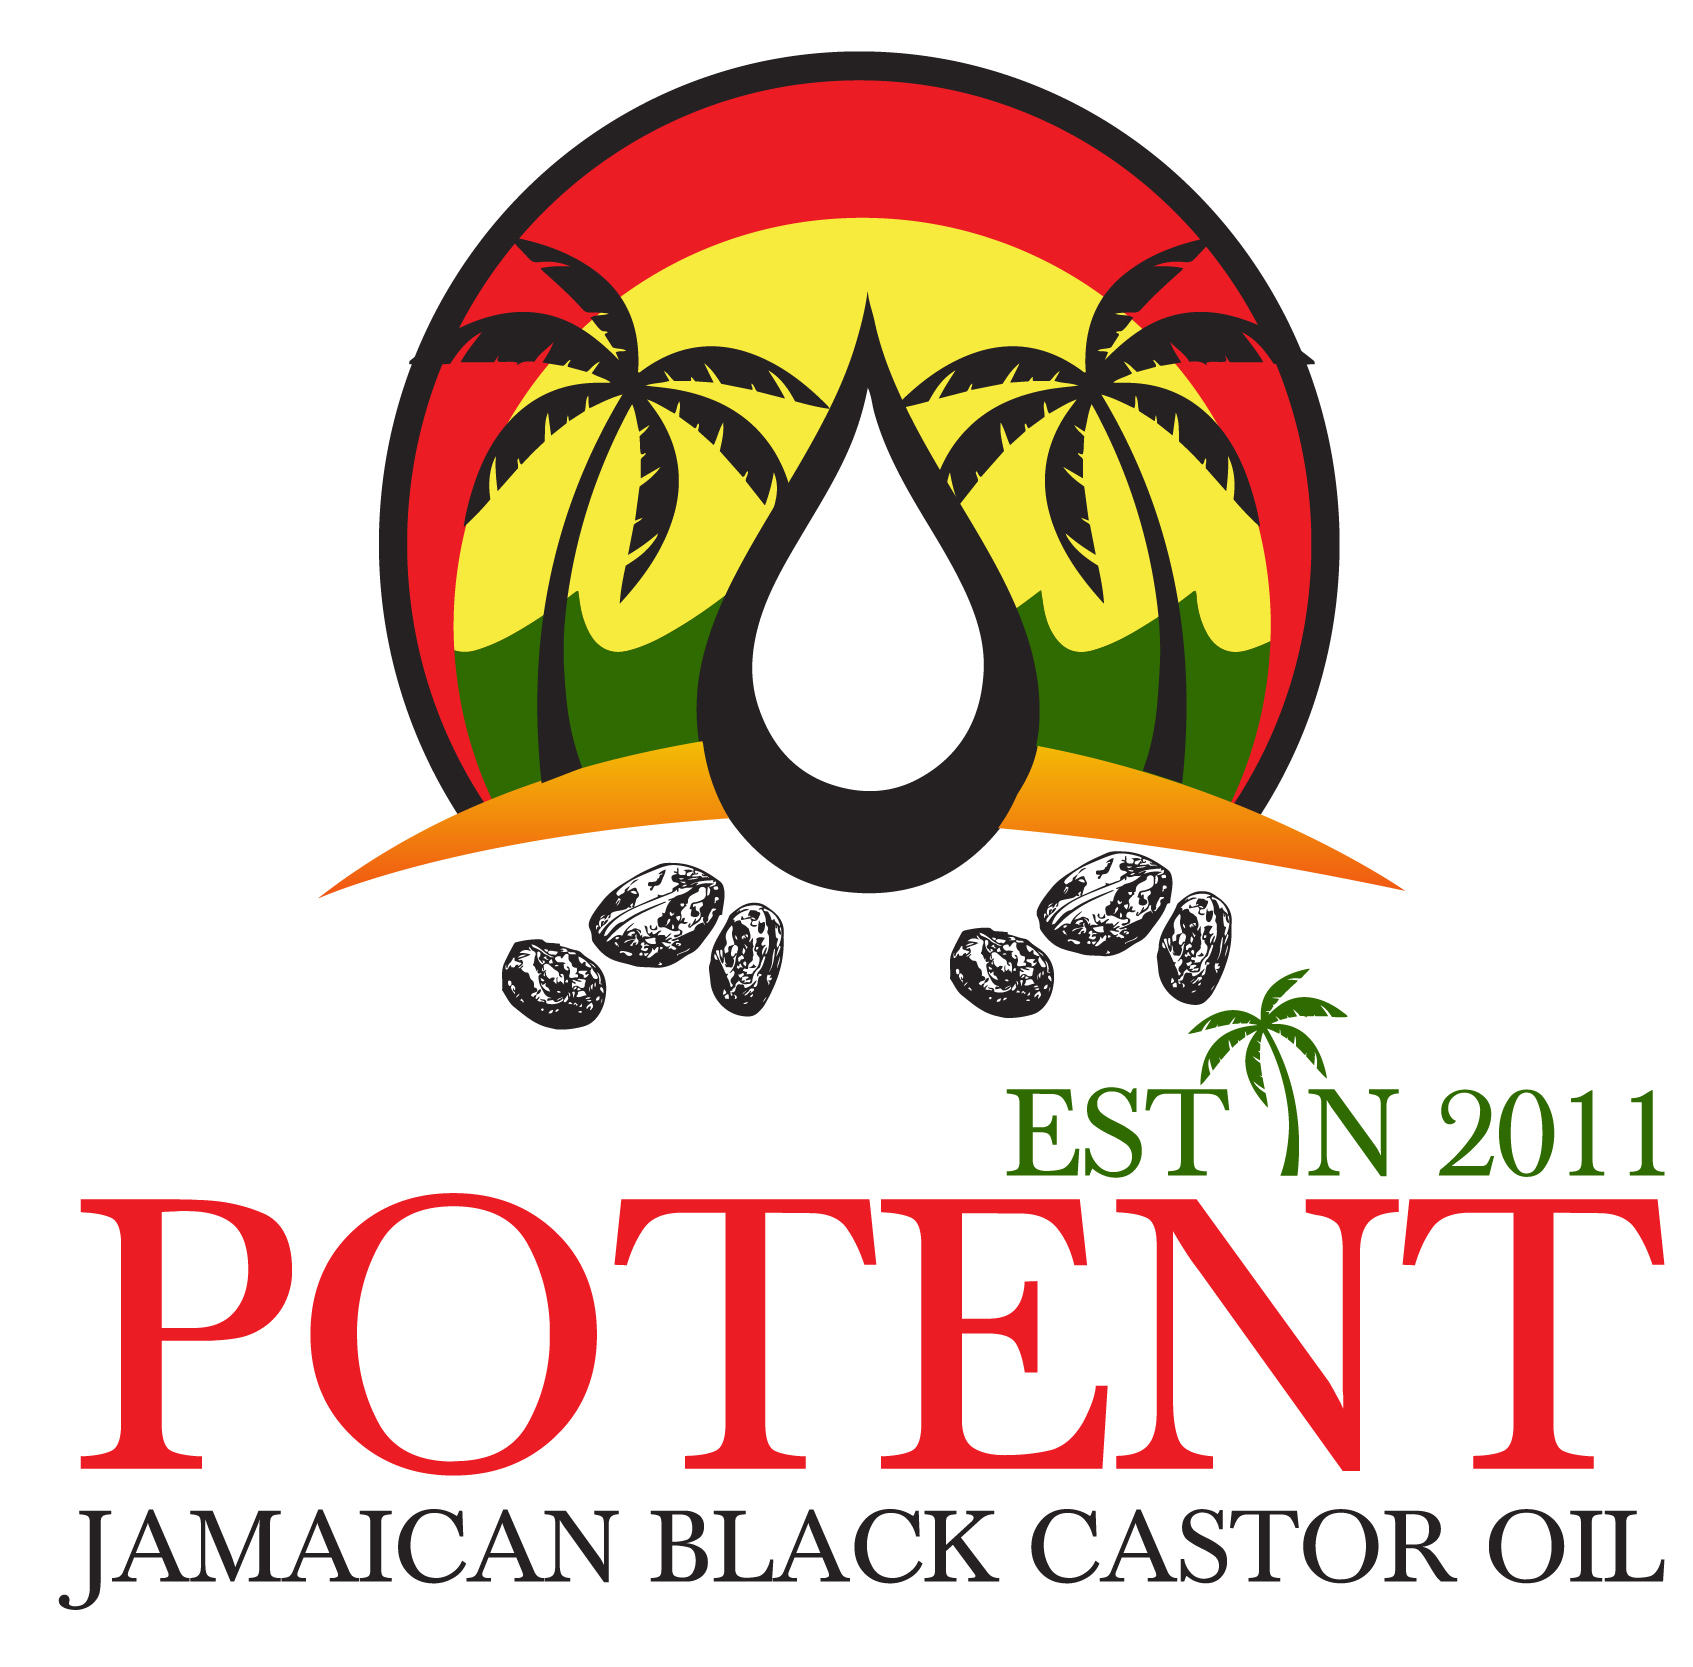 BDI Brands LLC Announces The Rebranding of Potent Jamaican Black Castor Oil